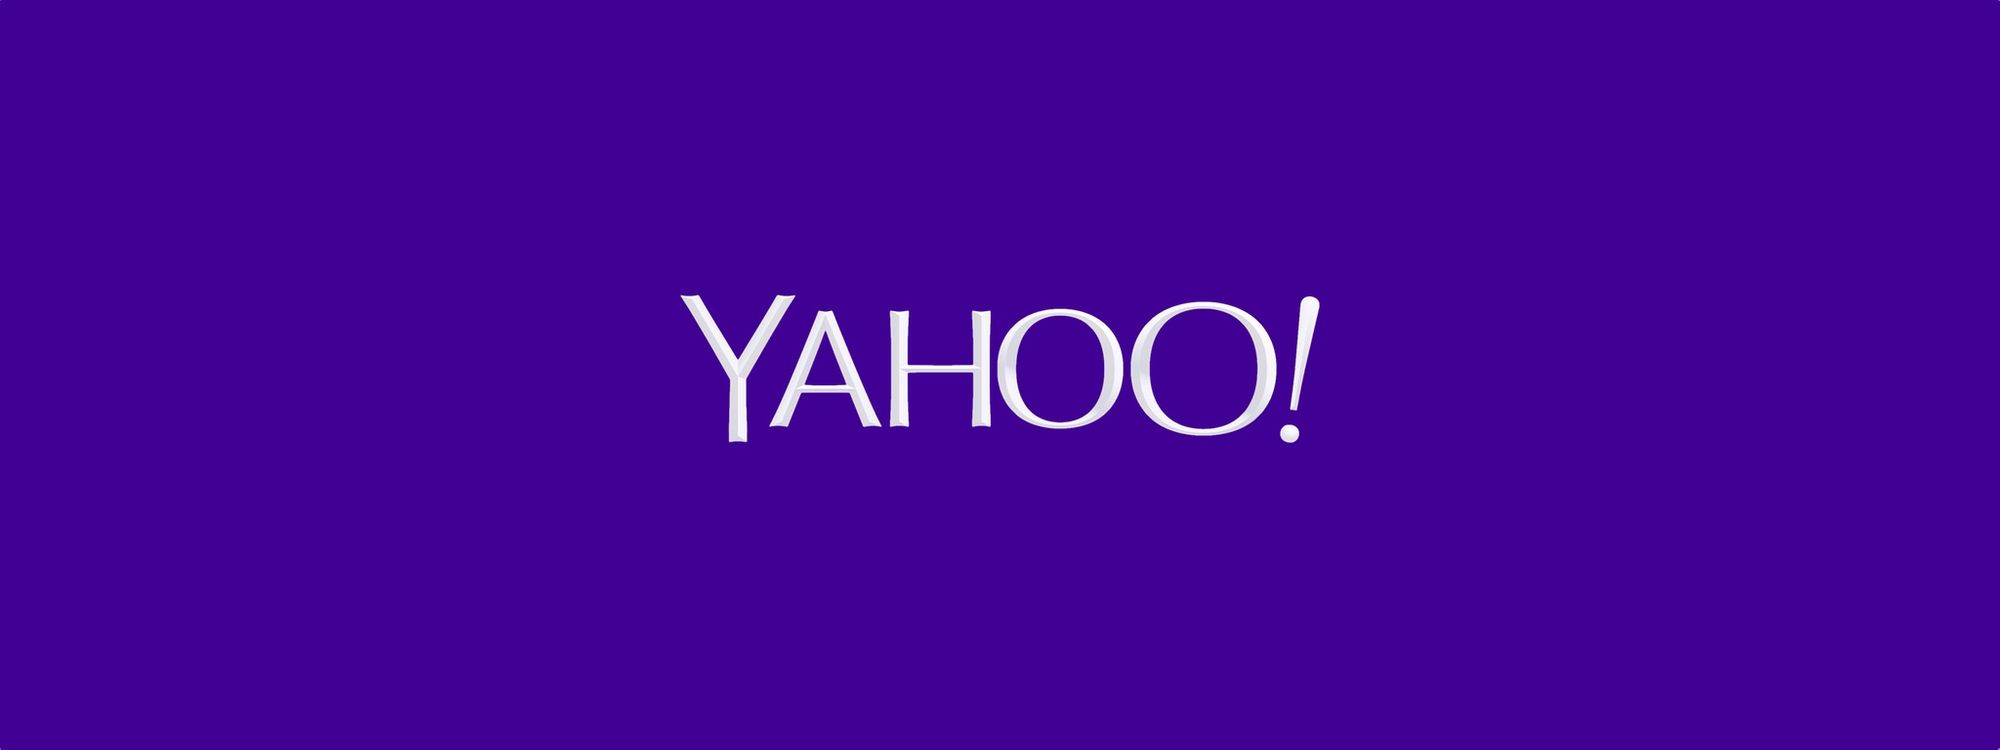 Joined Yahoo!